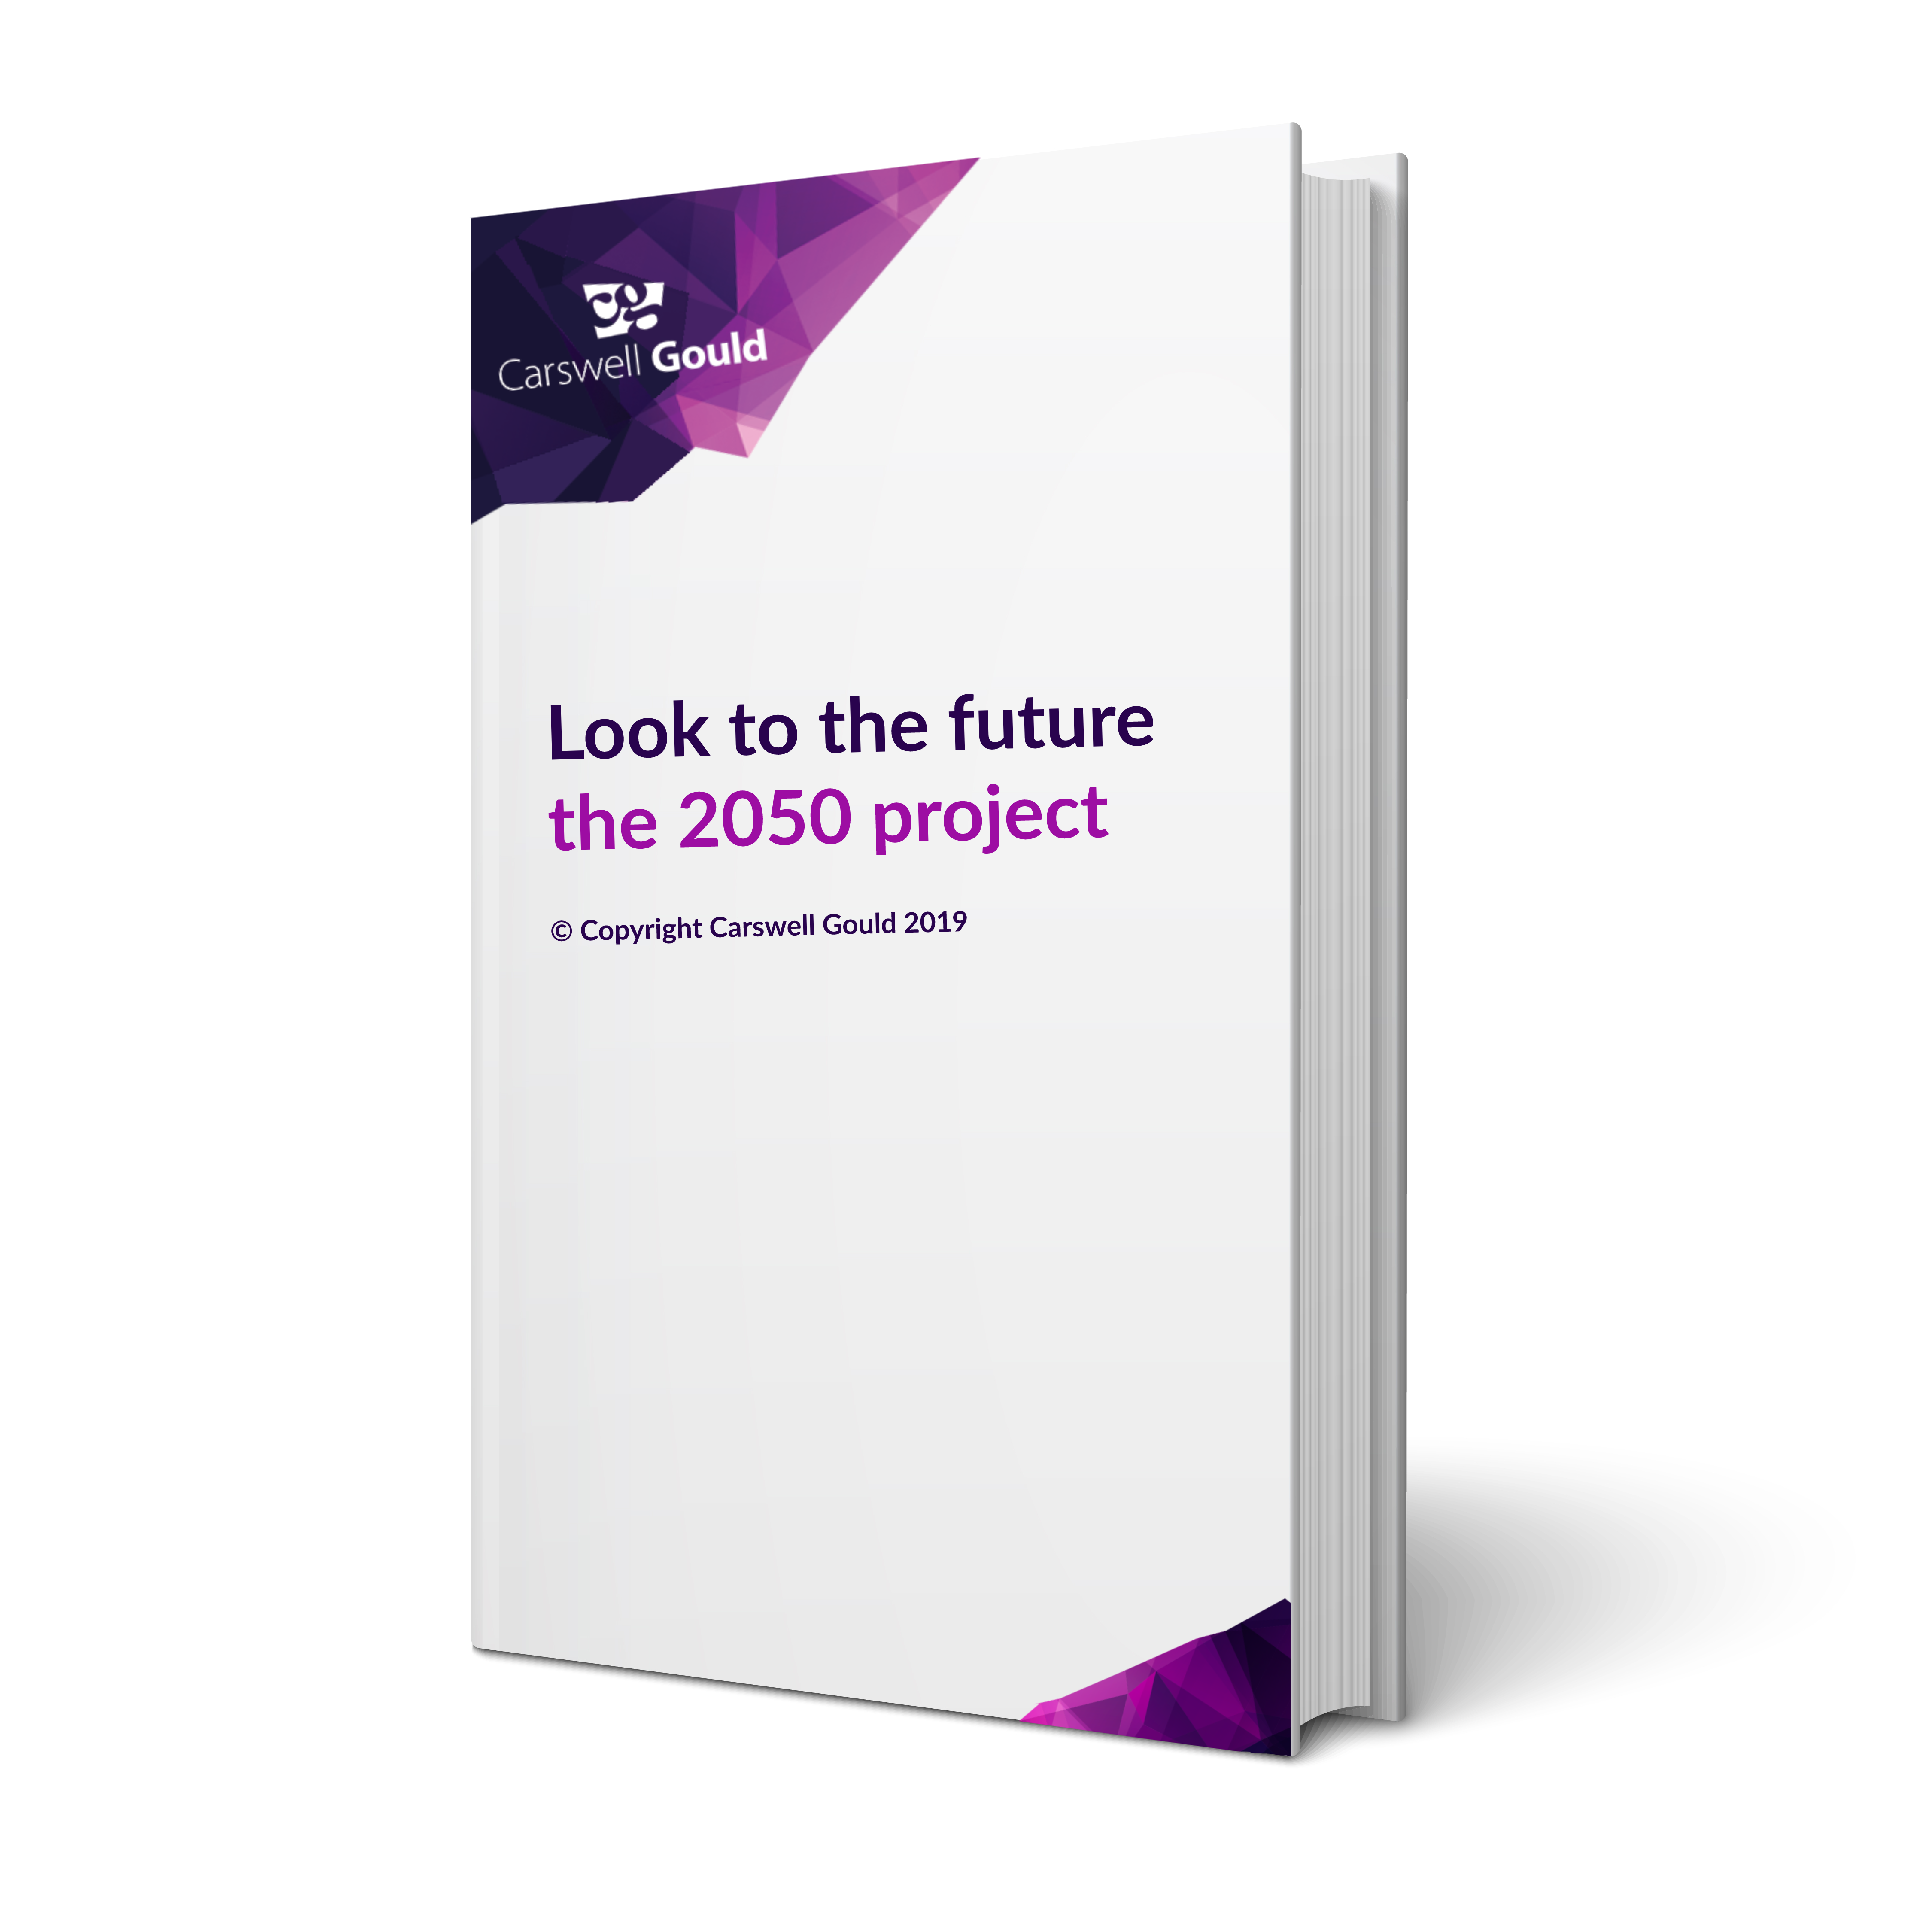 Download the PDF and discover what will life be like in 2050?